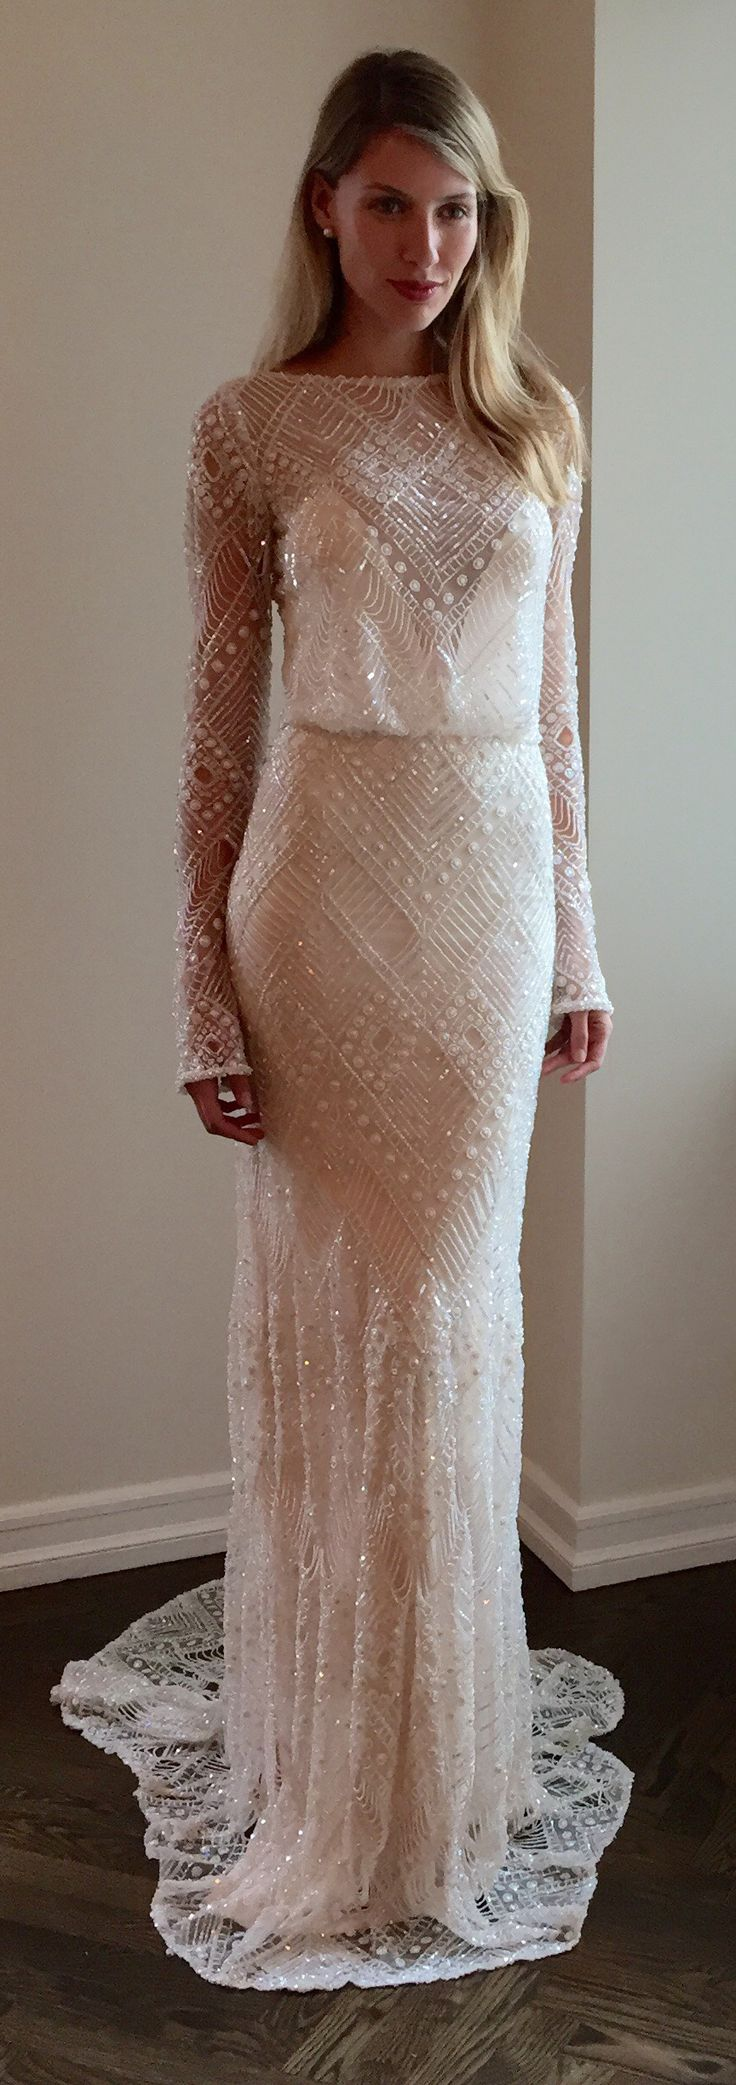 581 Best Images About Wedding Dresses With Sleeves On Pinterest